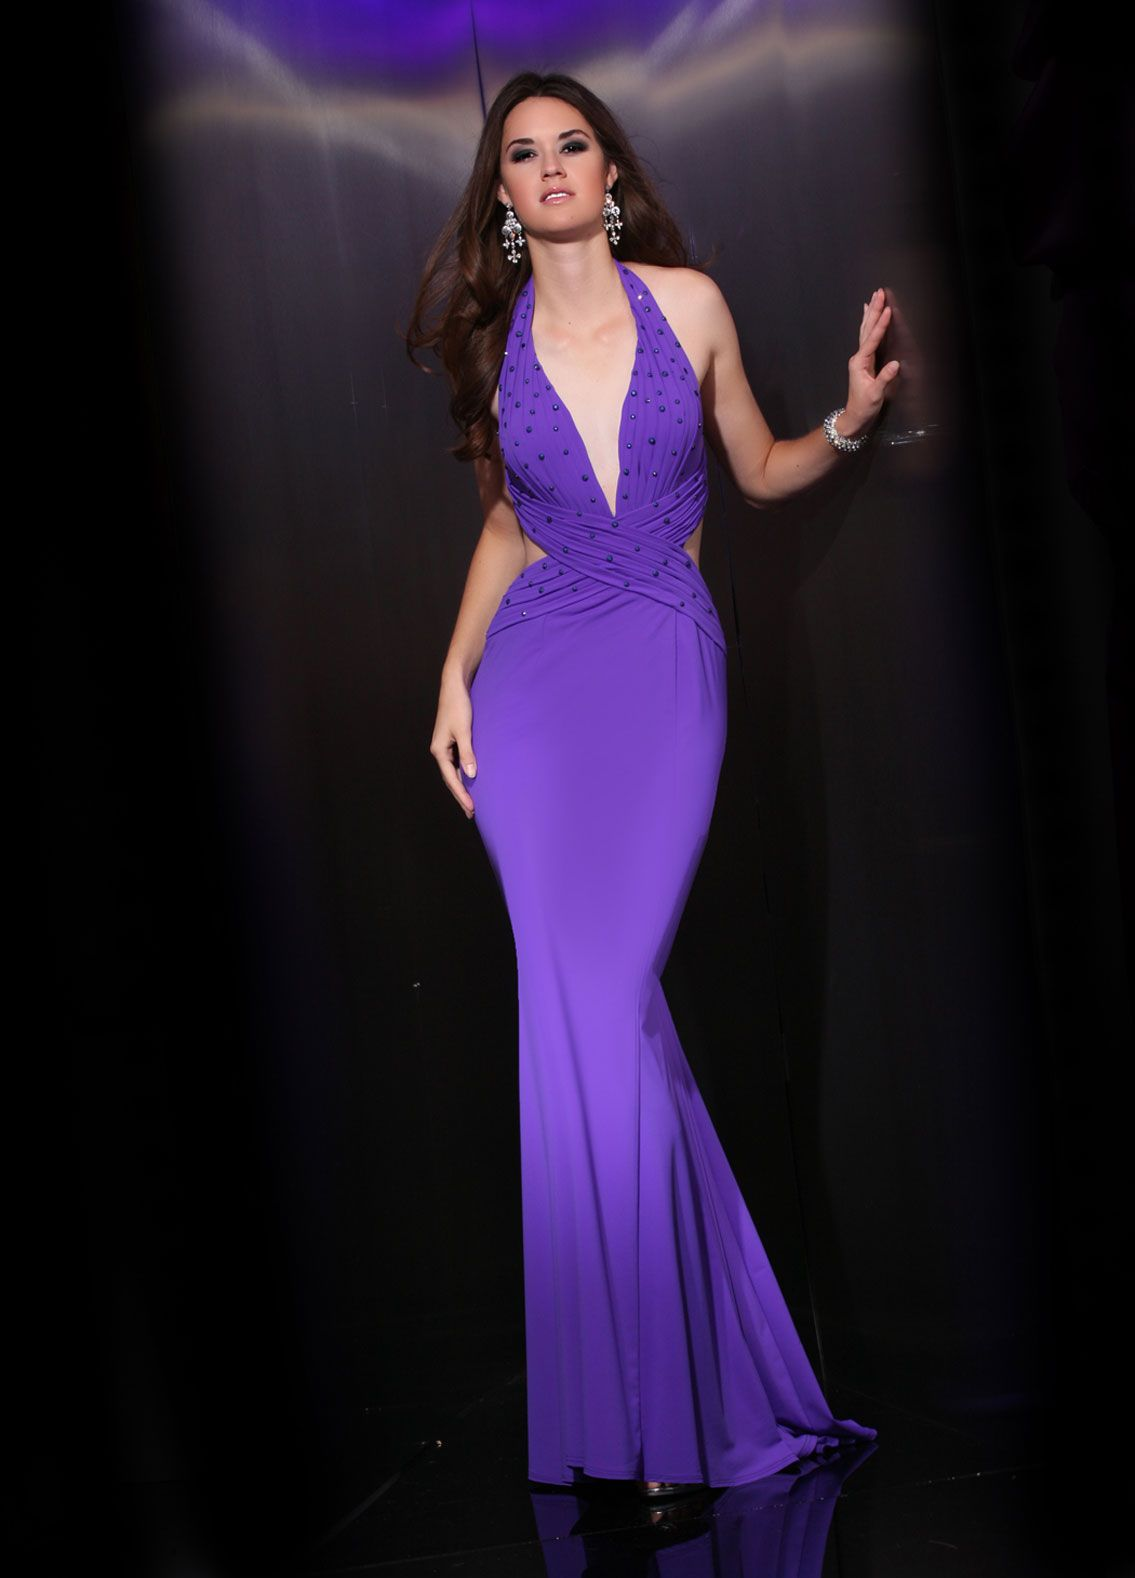 Prom Gowns by Xcite Prom, more info coming soon! | Formal wear ideas ...